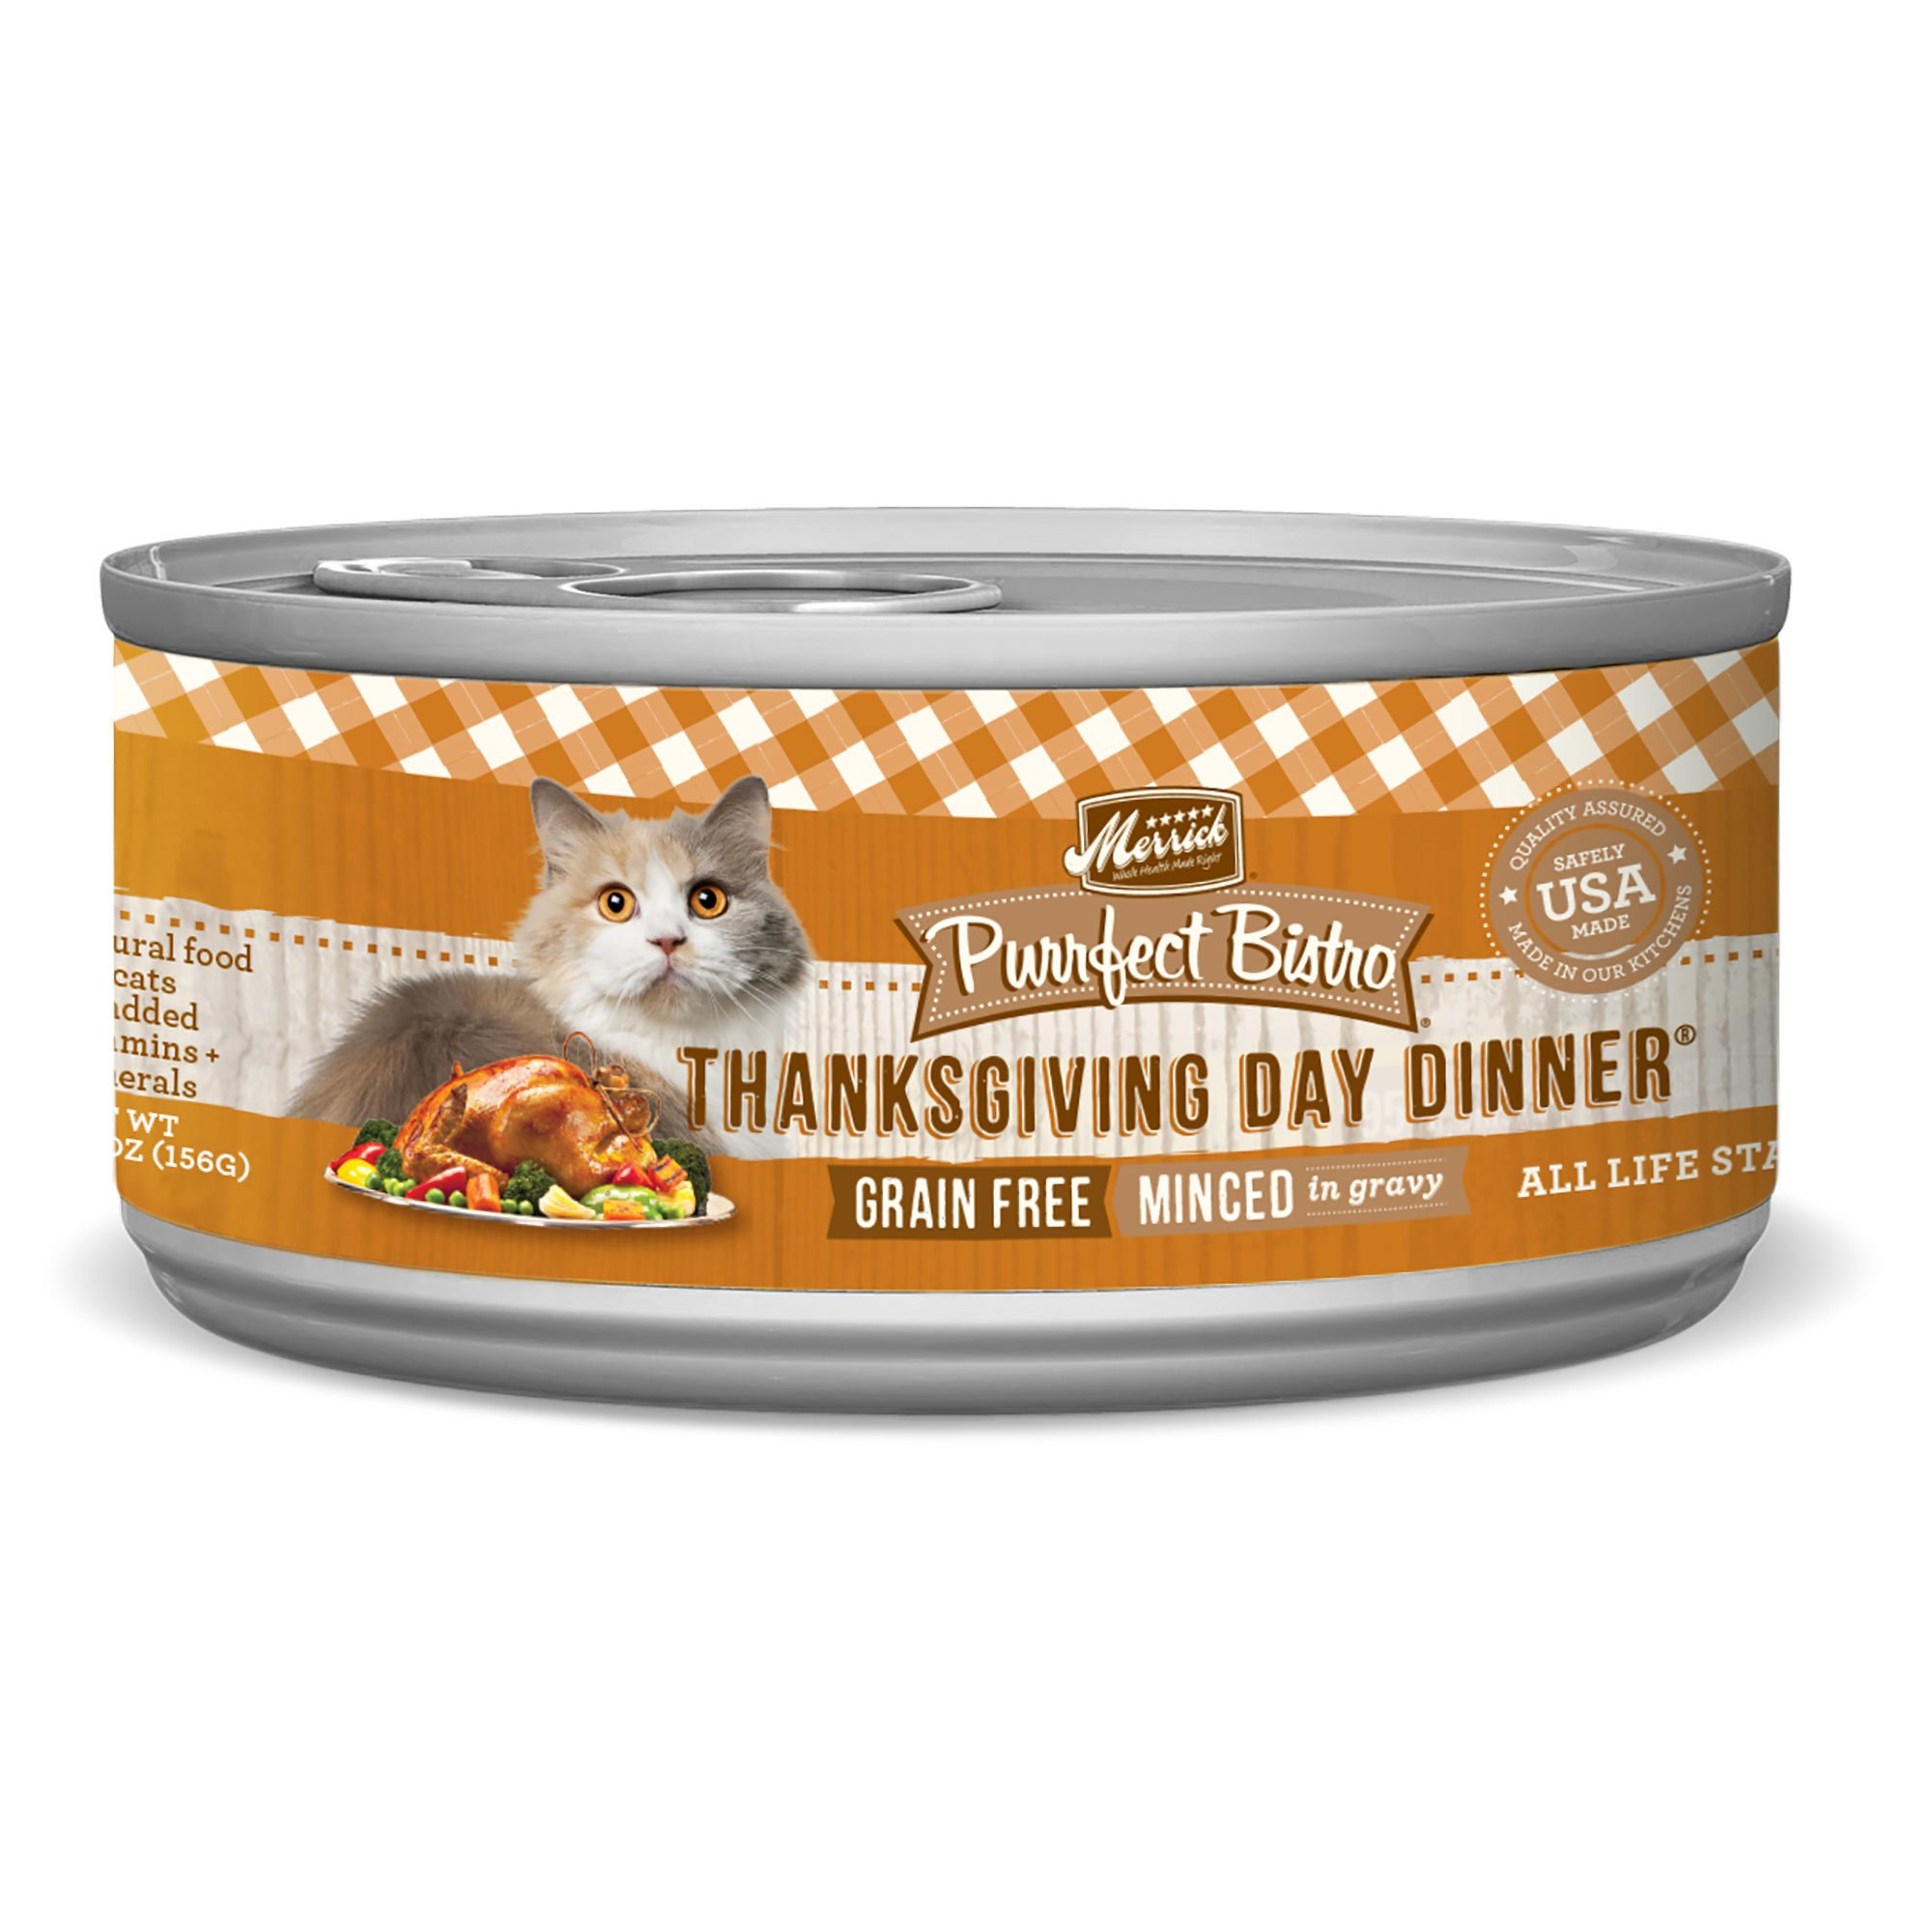 Merrick Purrfect Bistro Grain Free, 5.5 oz, Thanksgiving Day Dinner - Pack of 24  by Merrick